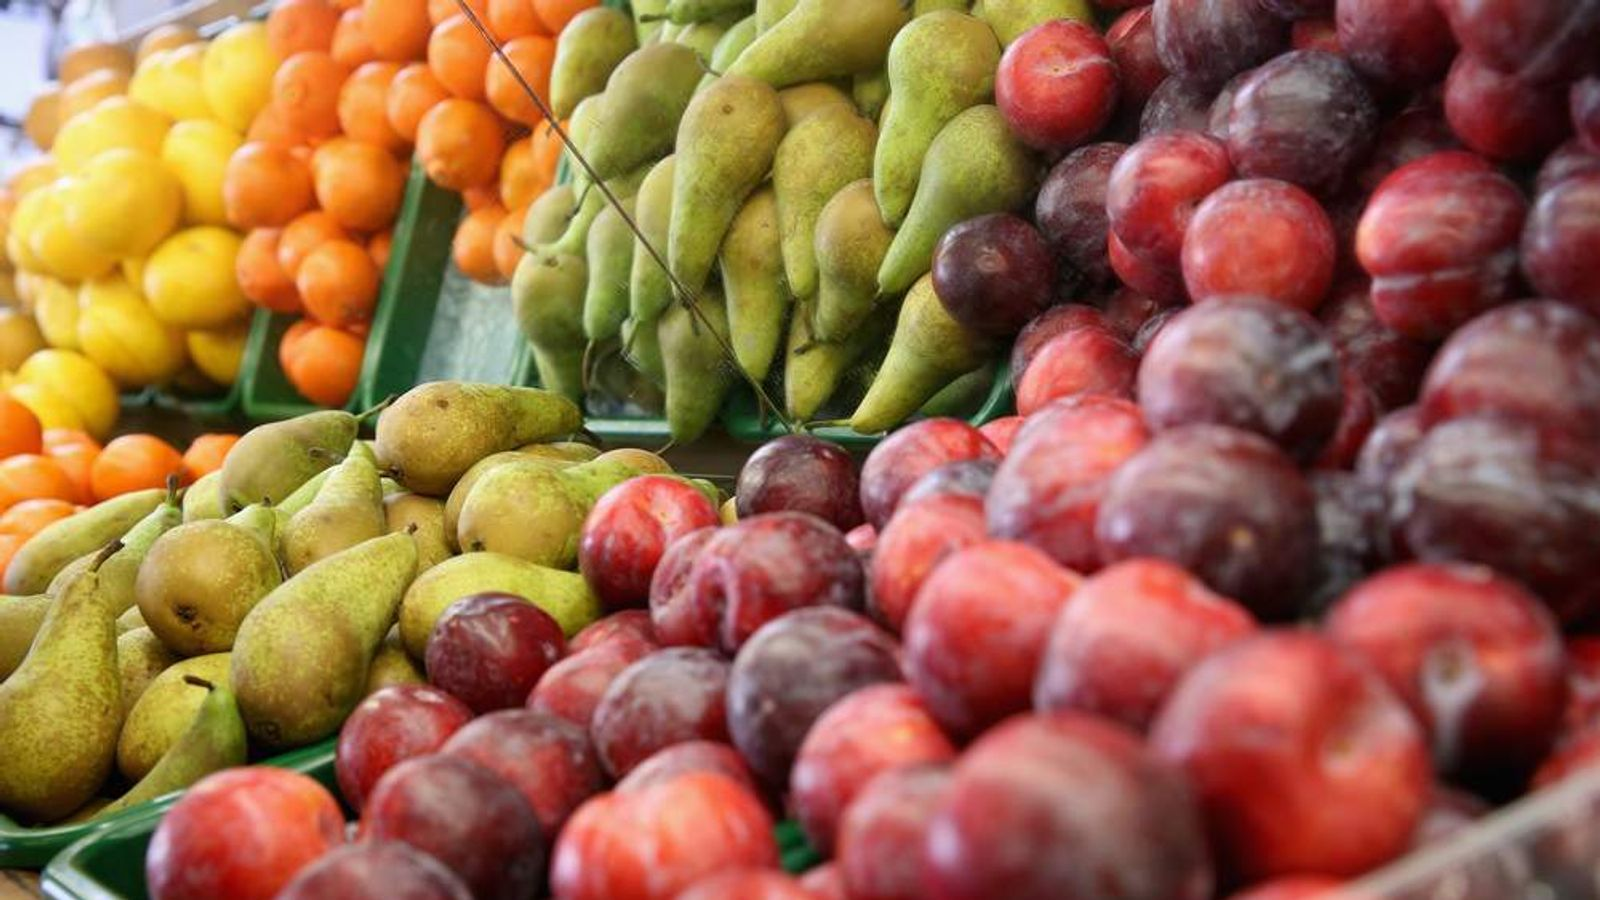 Researchers in London say adults need to eat seven pieces of fruit and veg every day to stay healthy.